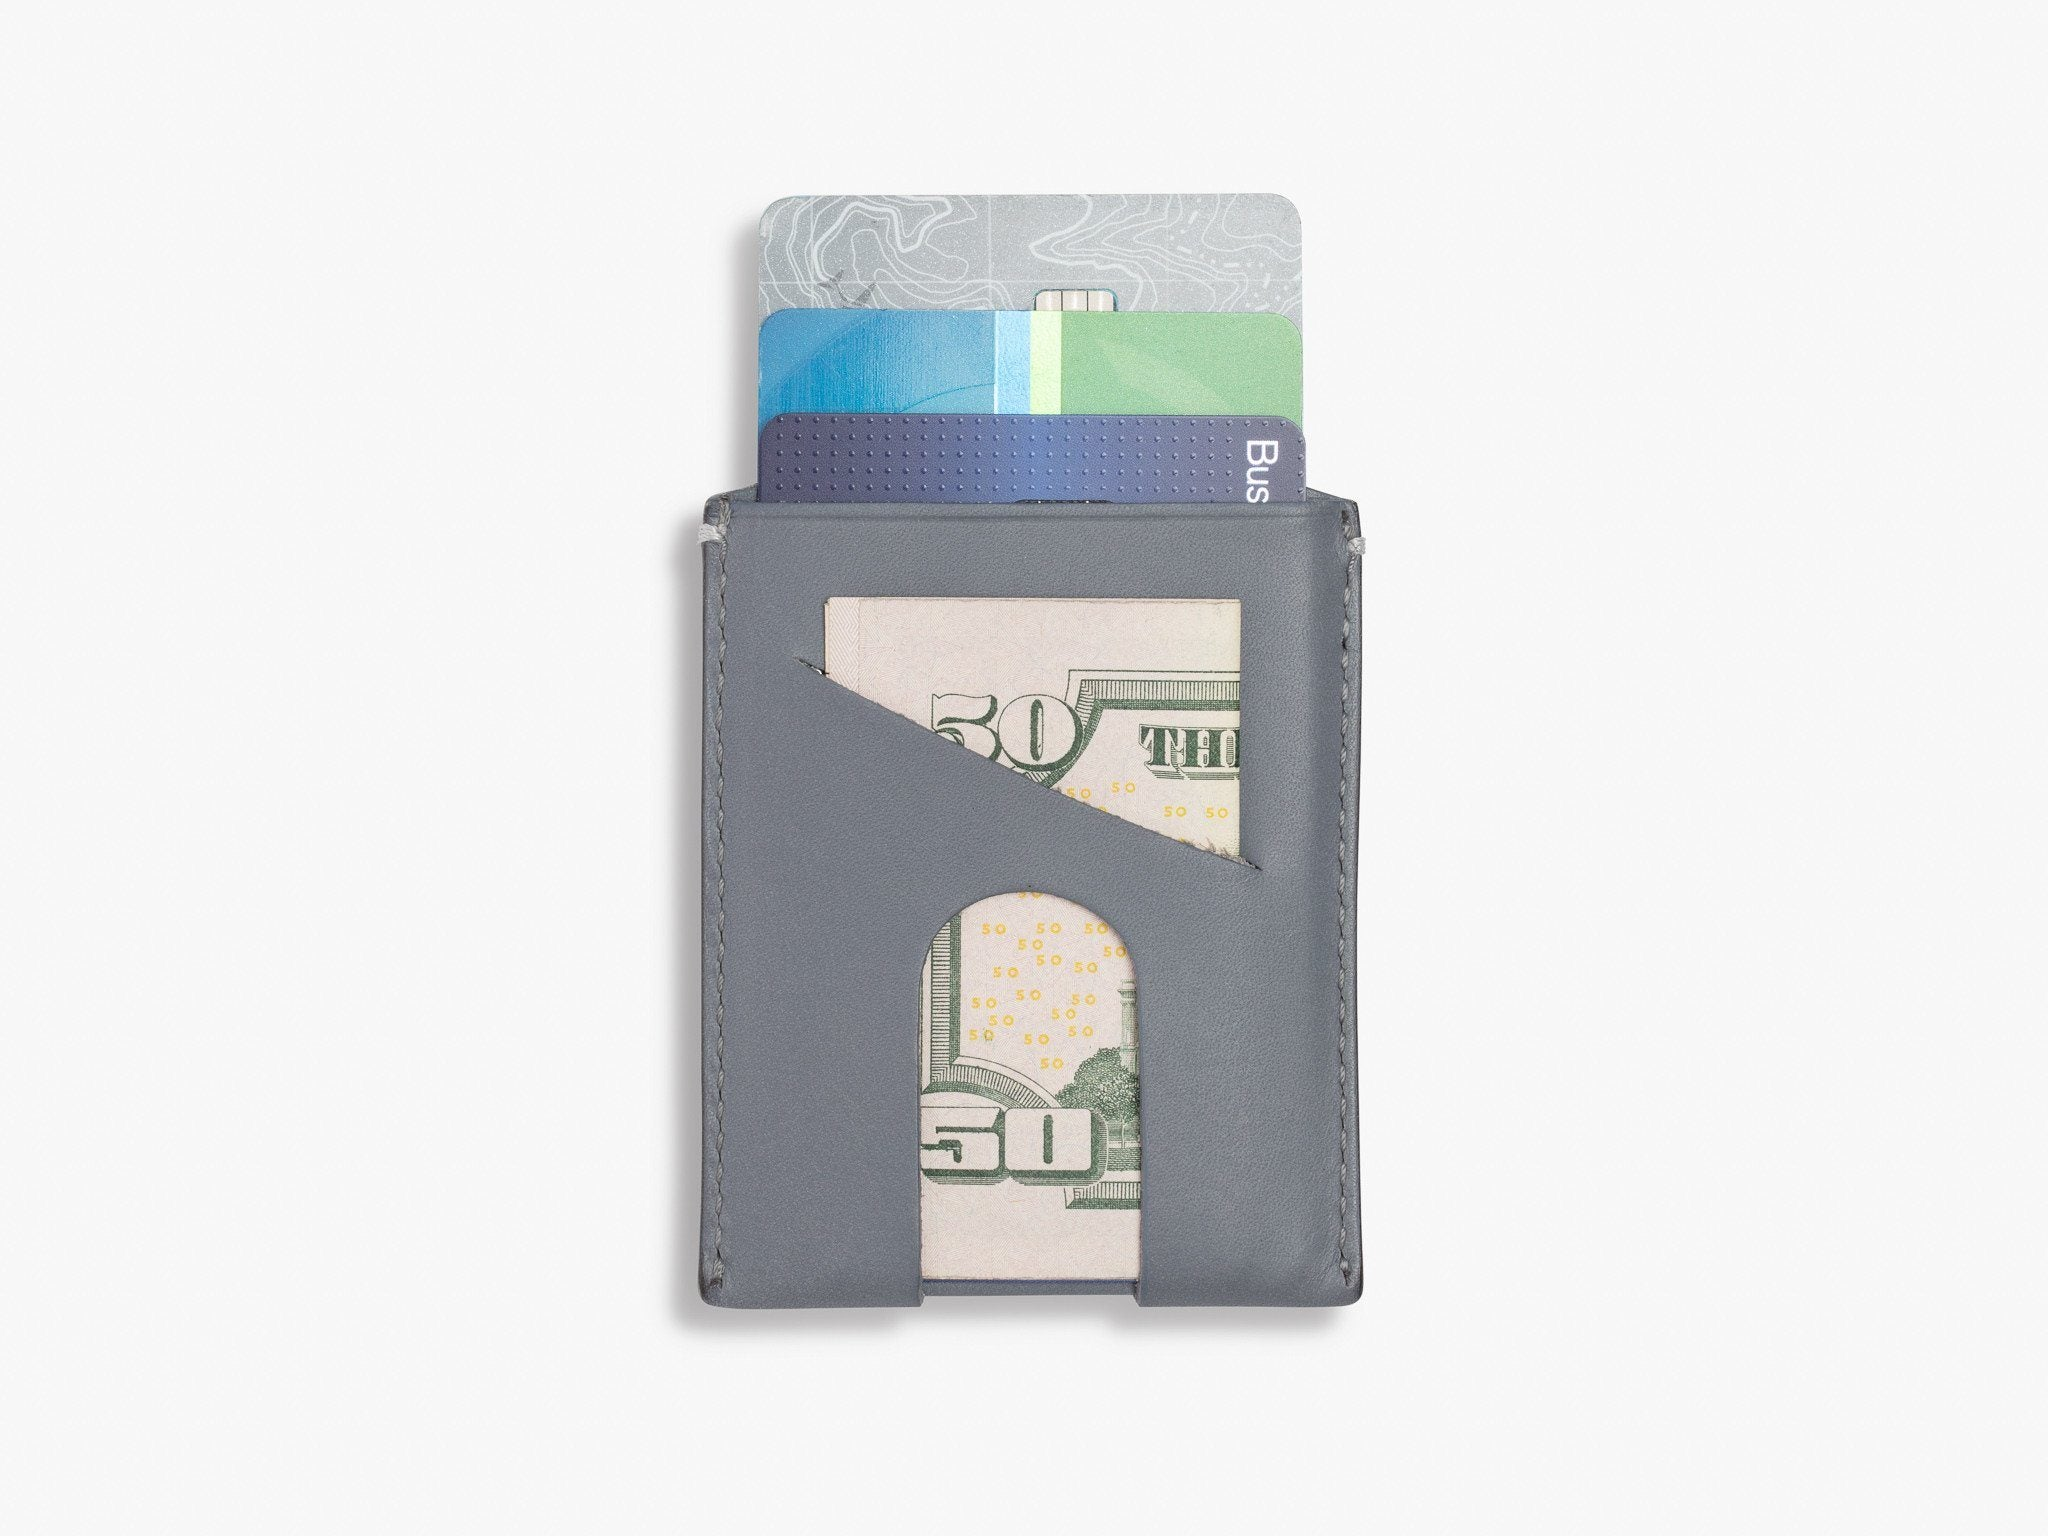 ORIGINAL CARD WALLET WALLET ANSON CALDER _Steel-Grey Card Non-RFID